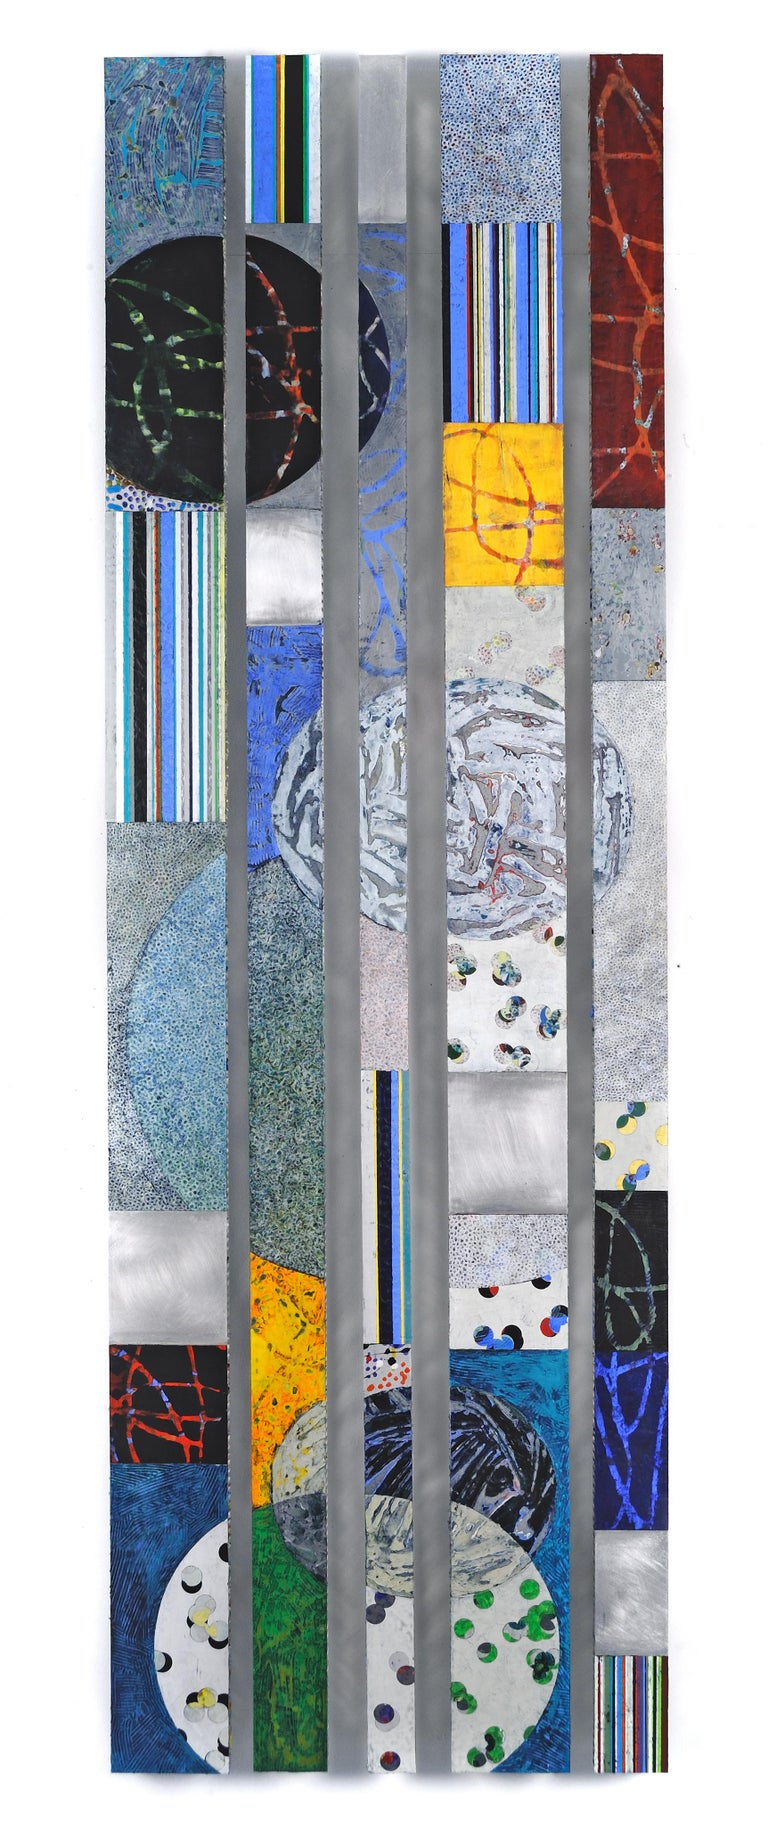 Strata 18 Set A, 2017, acrylic and wax on metal, 72 inches. Geometric forms - Mixed Media Art by Francie Hester